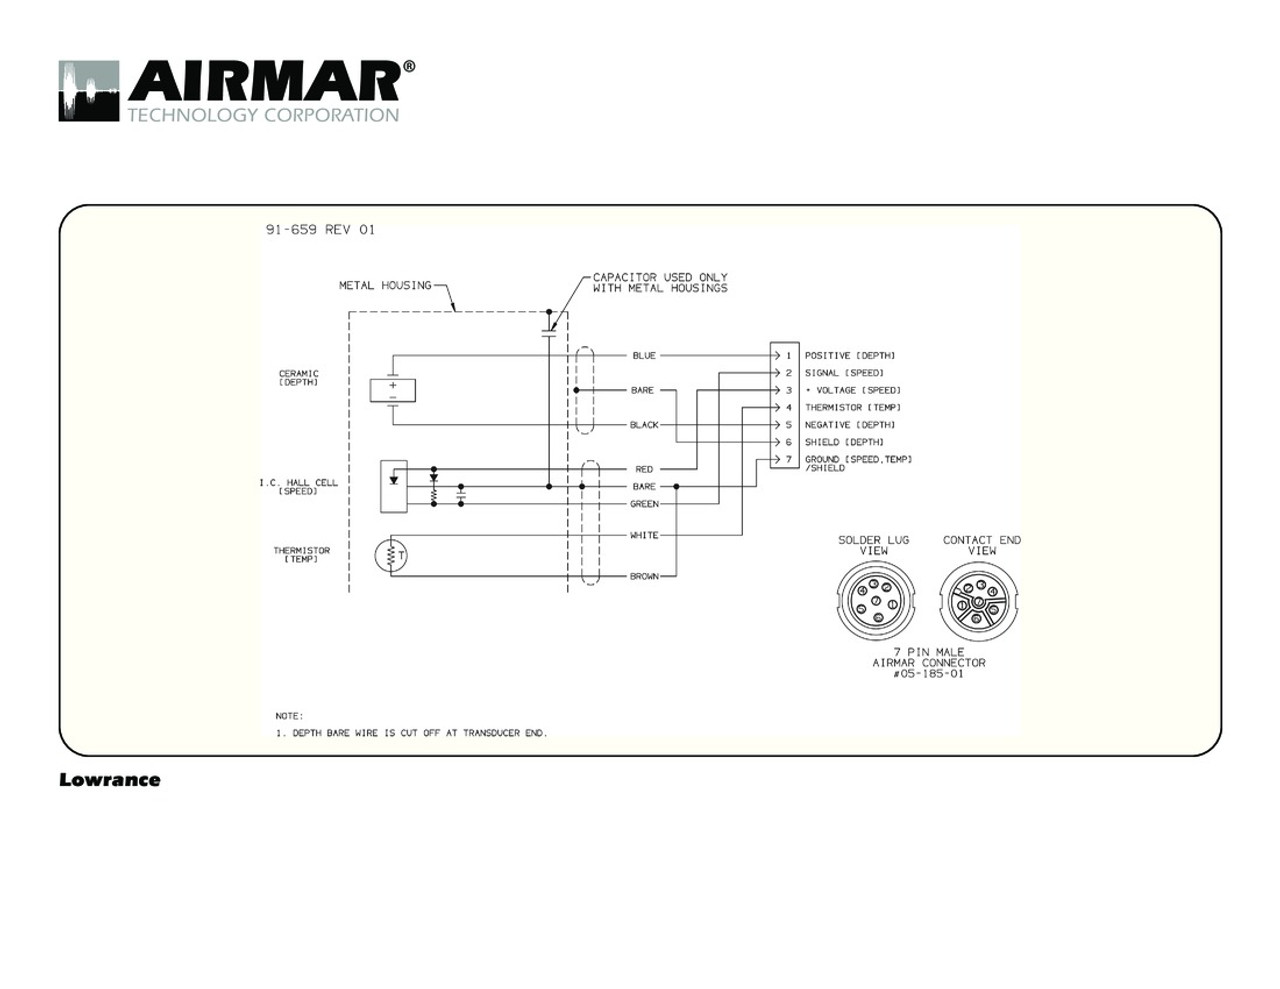 Airmar Wiring Diagram Lowrance 7 pin (D,S,T) | Blue Bottle Marine pressure transducer wiring Blue Bottle Marine